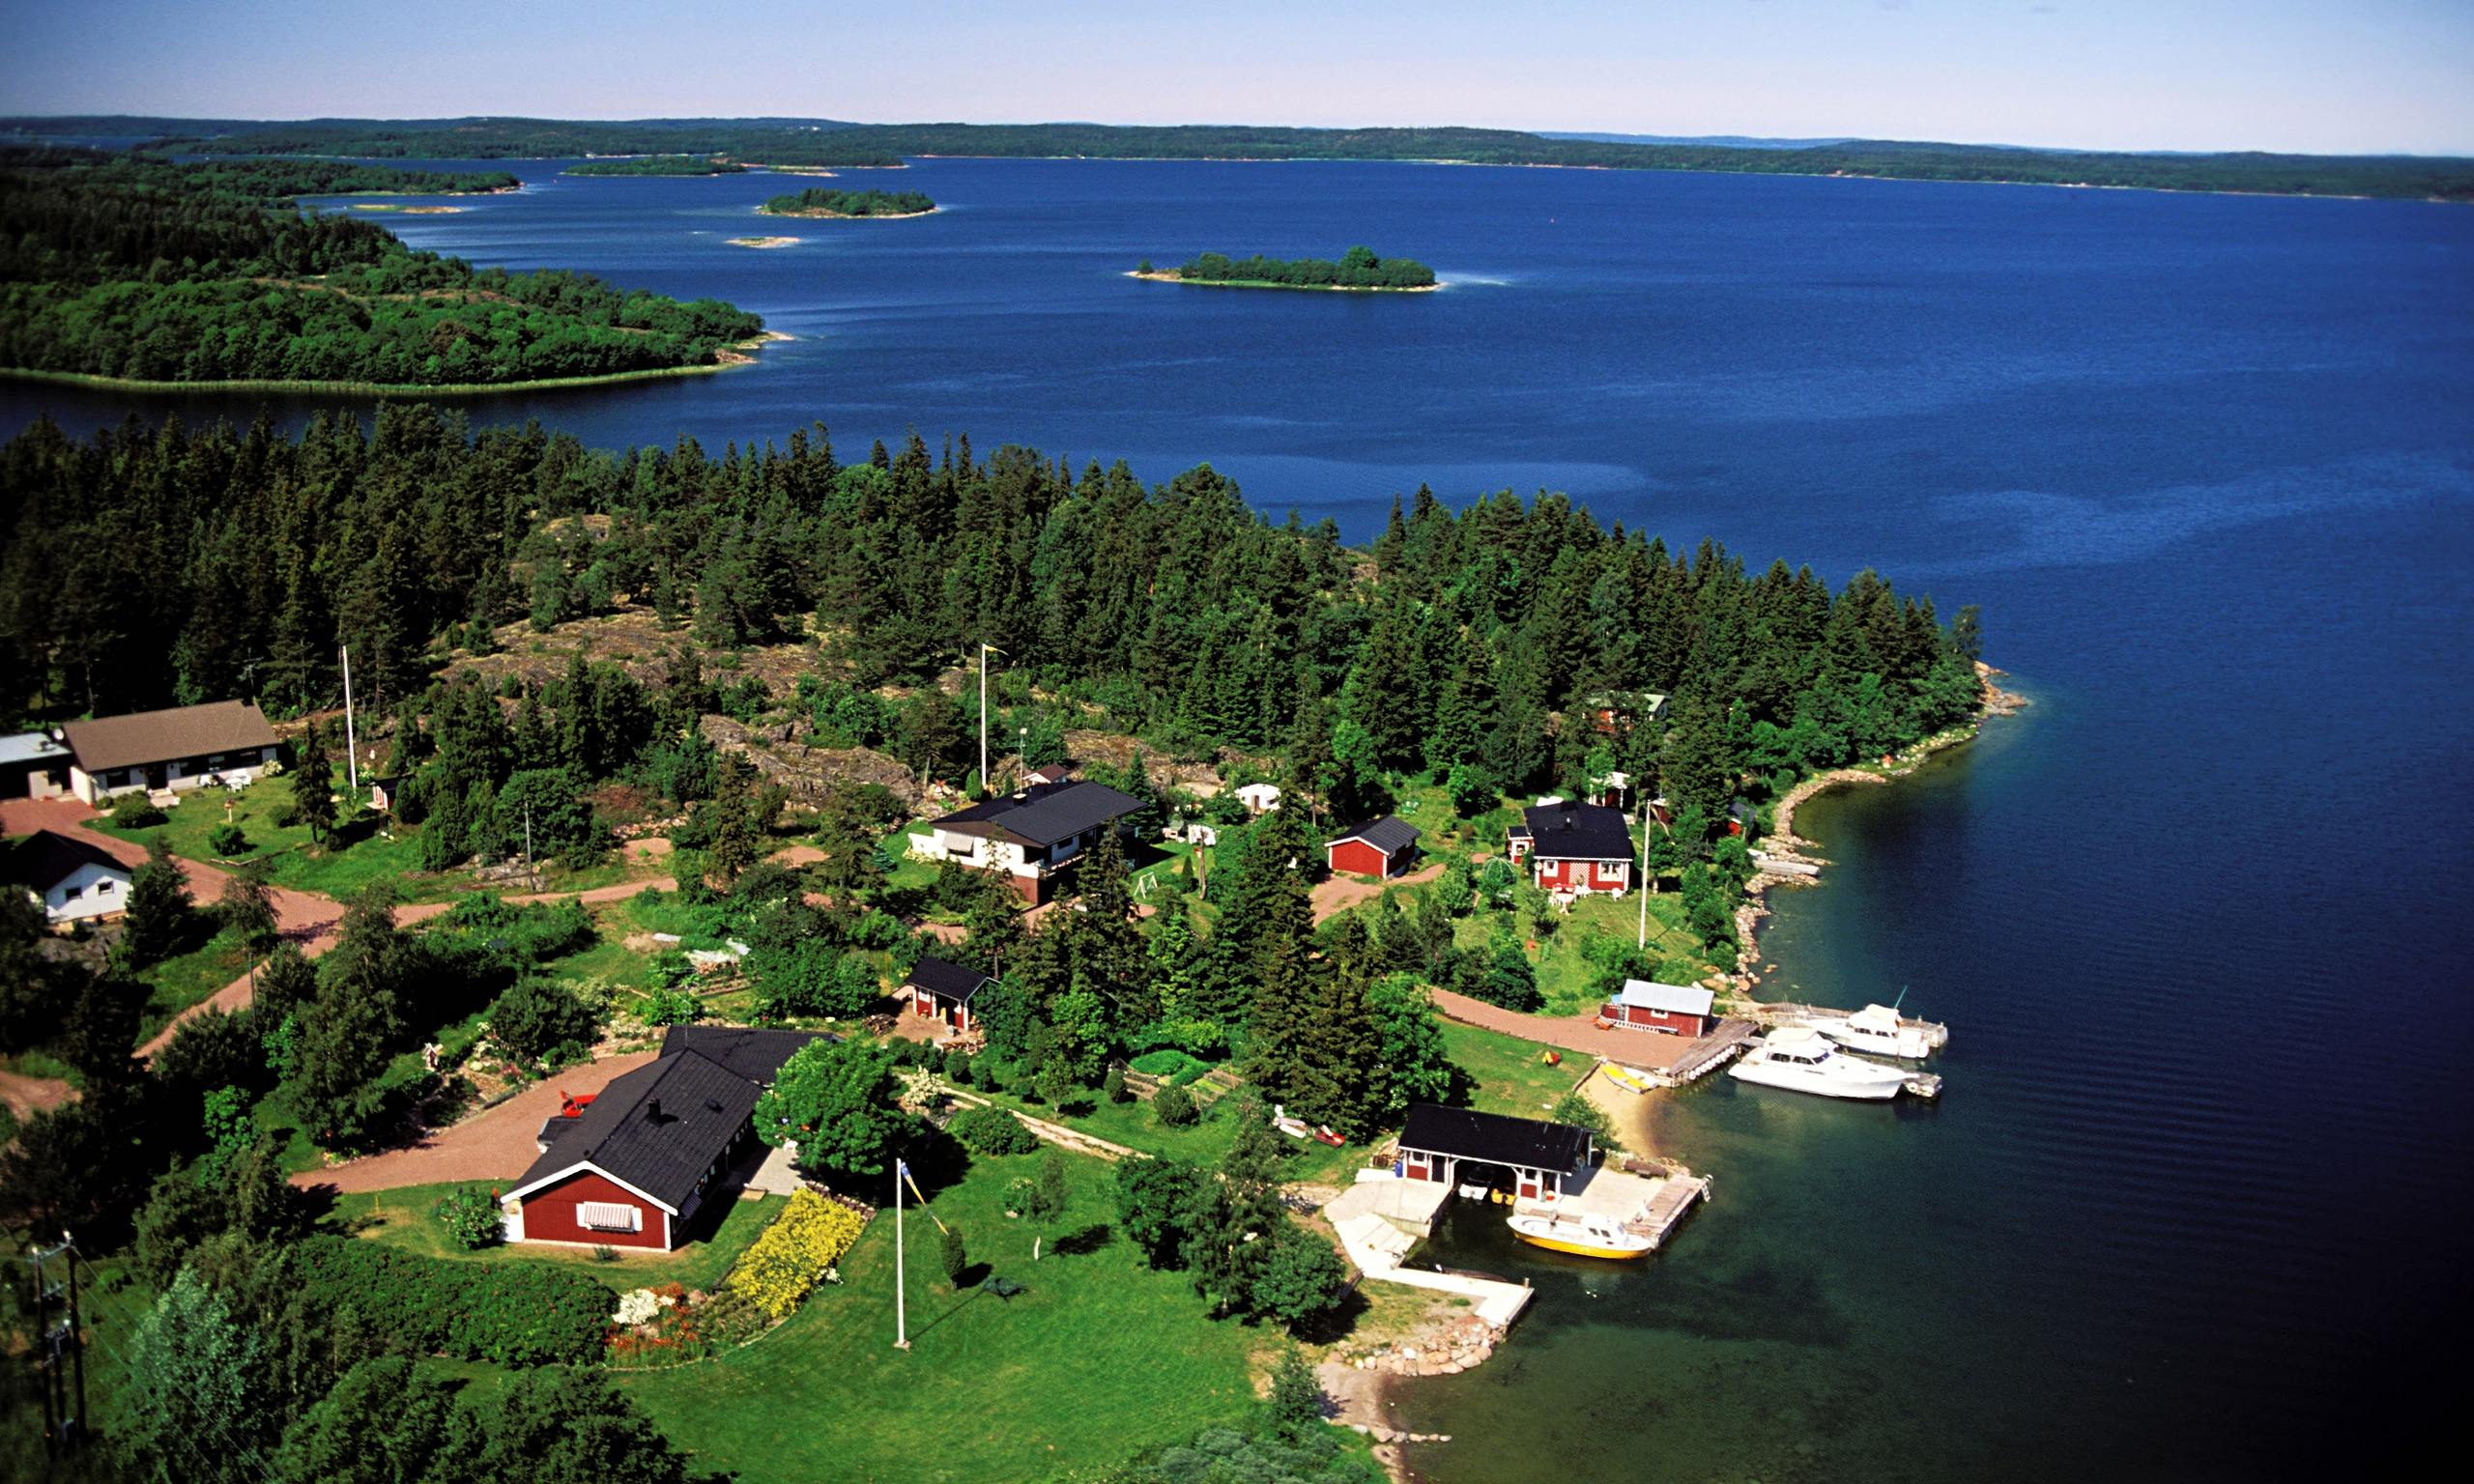 Finland, province of Aland, Islands of Aland, region Mariehamn